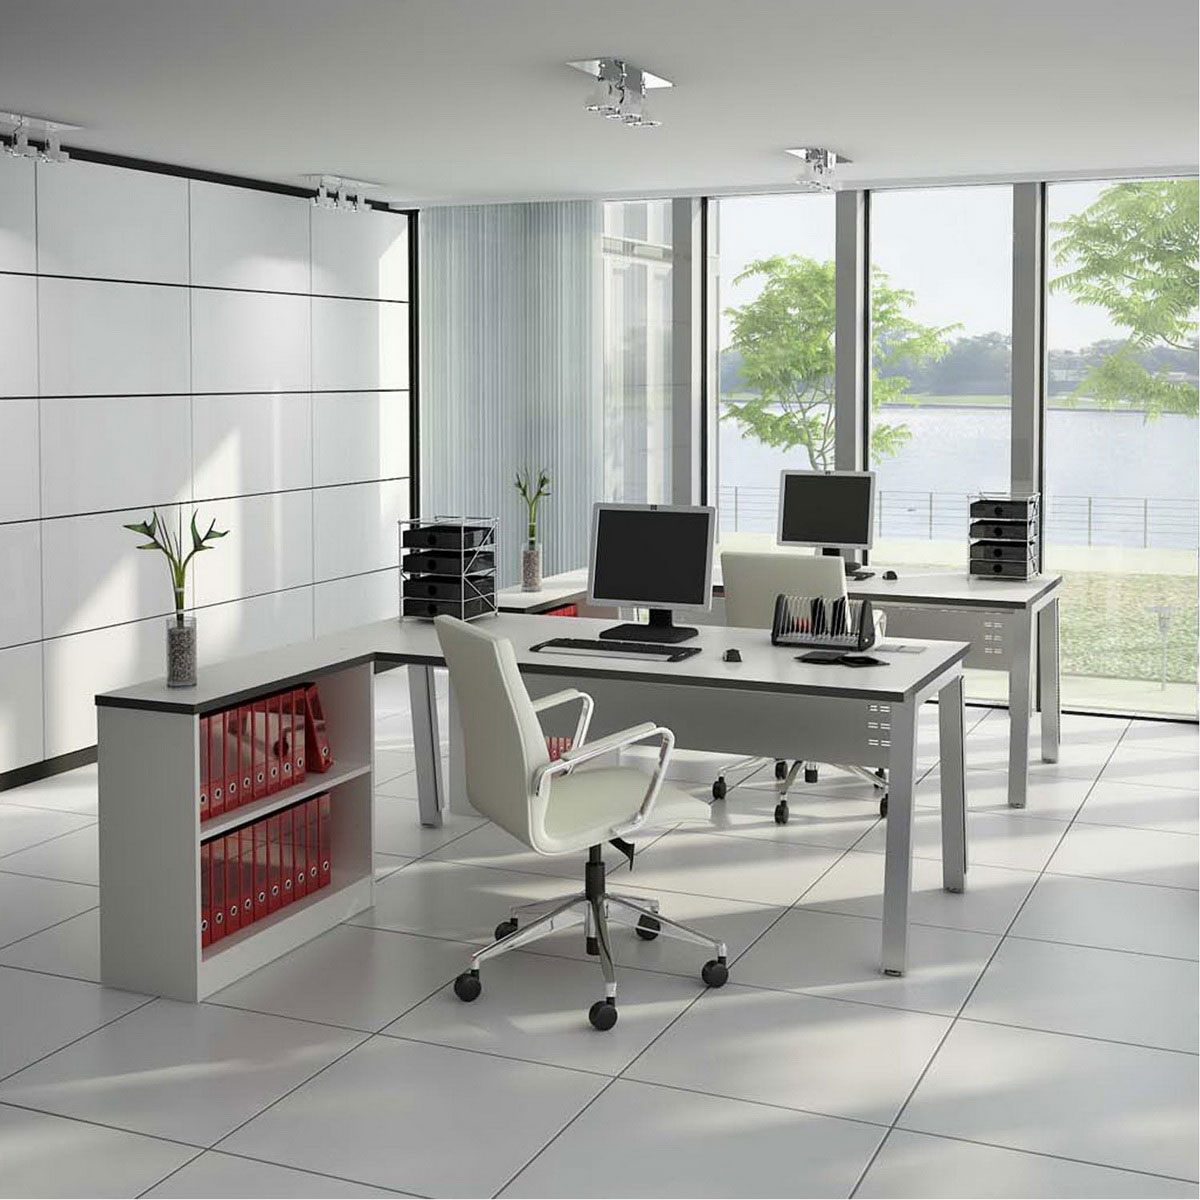 Office interior design dreams house furniture for Office design at home